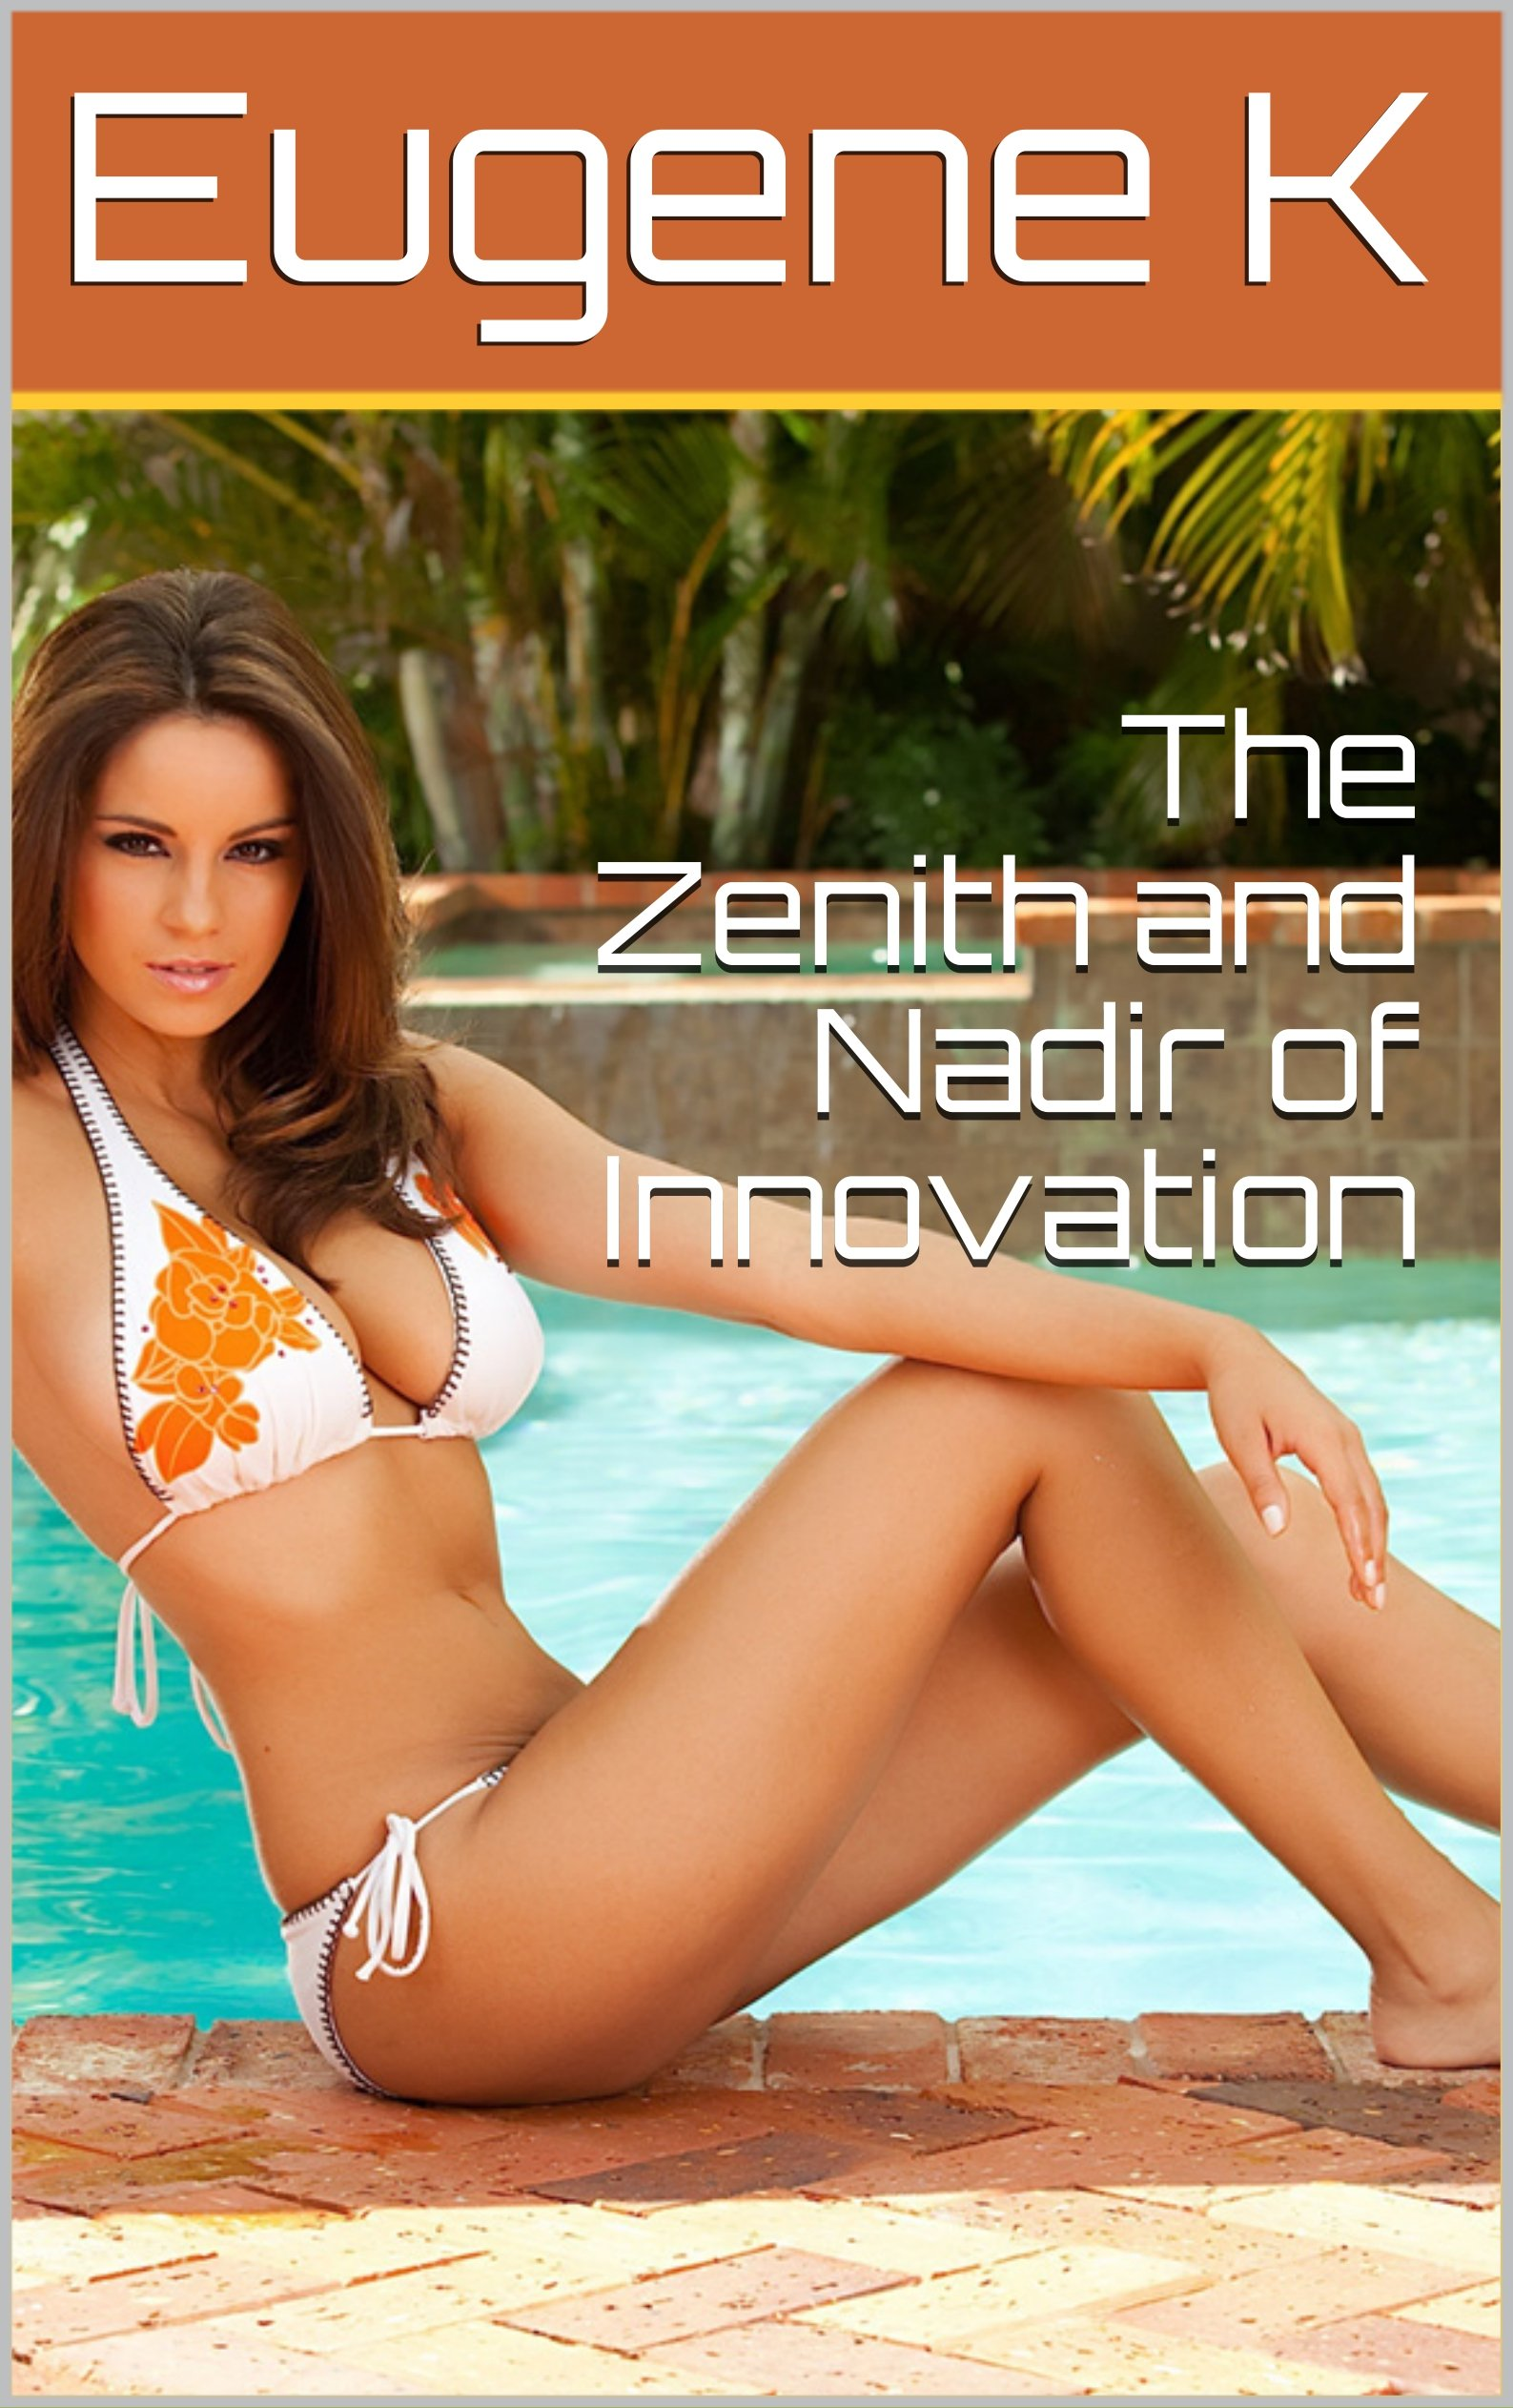 The Zenith and Nadir of Innovation